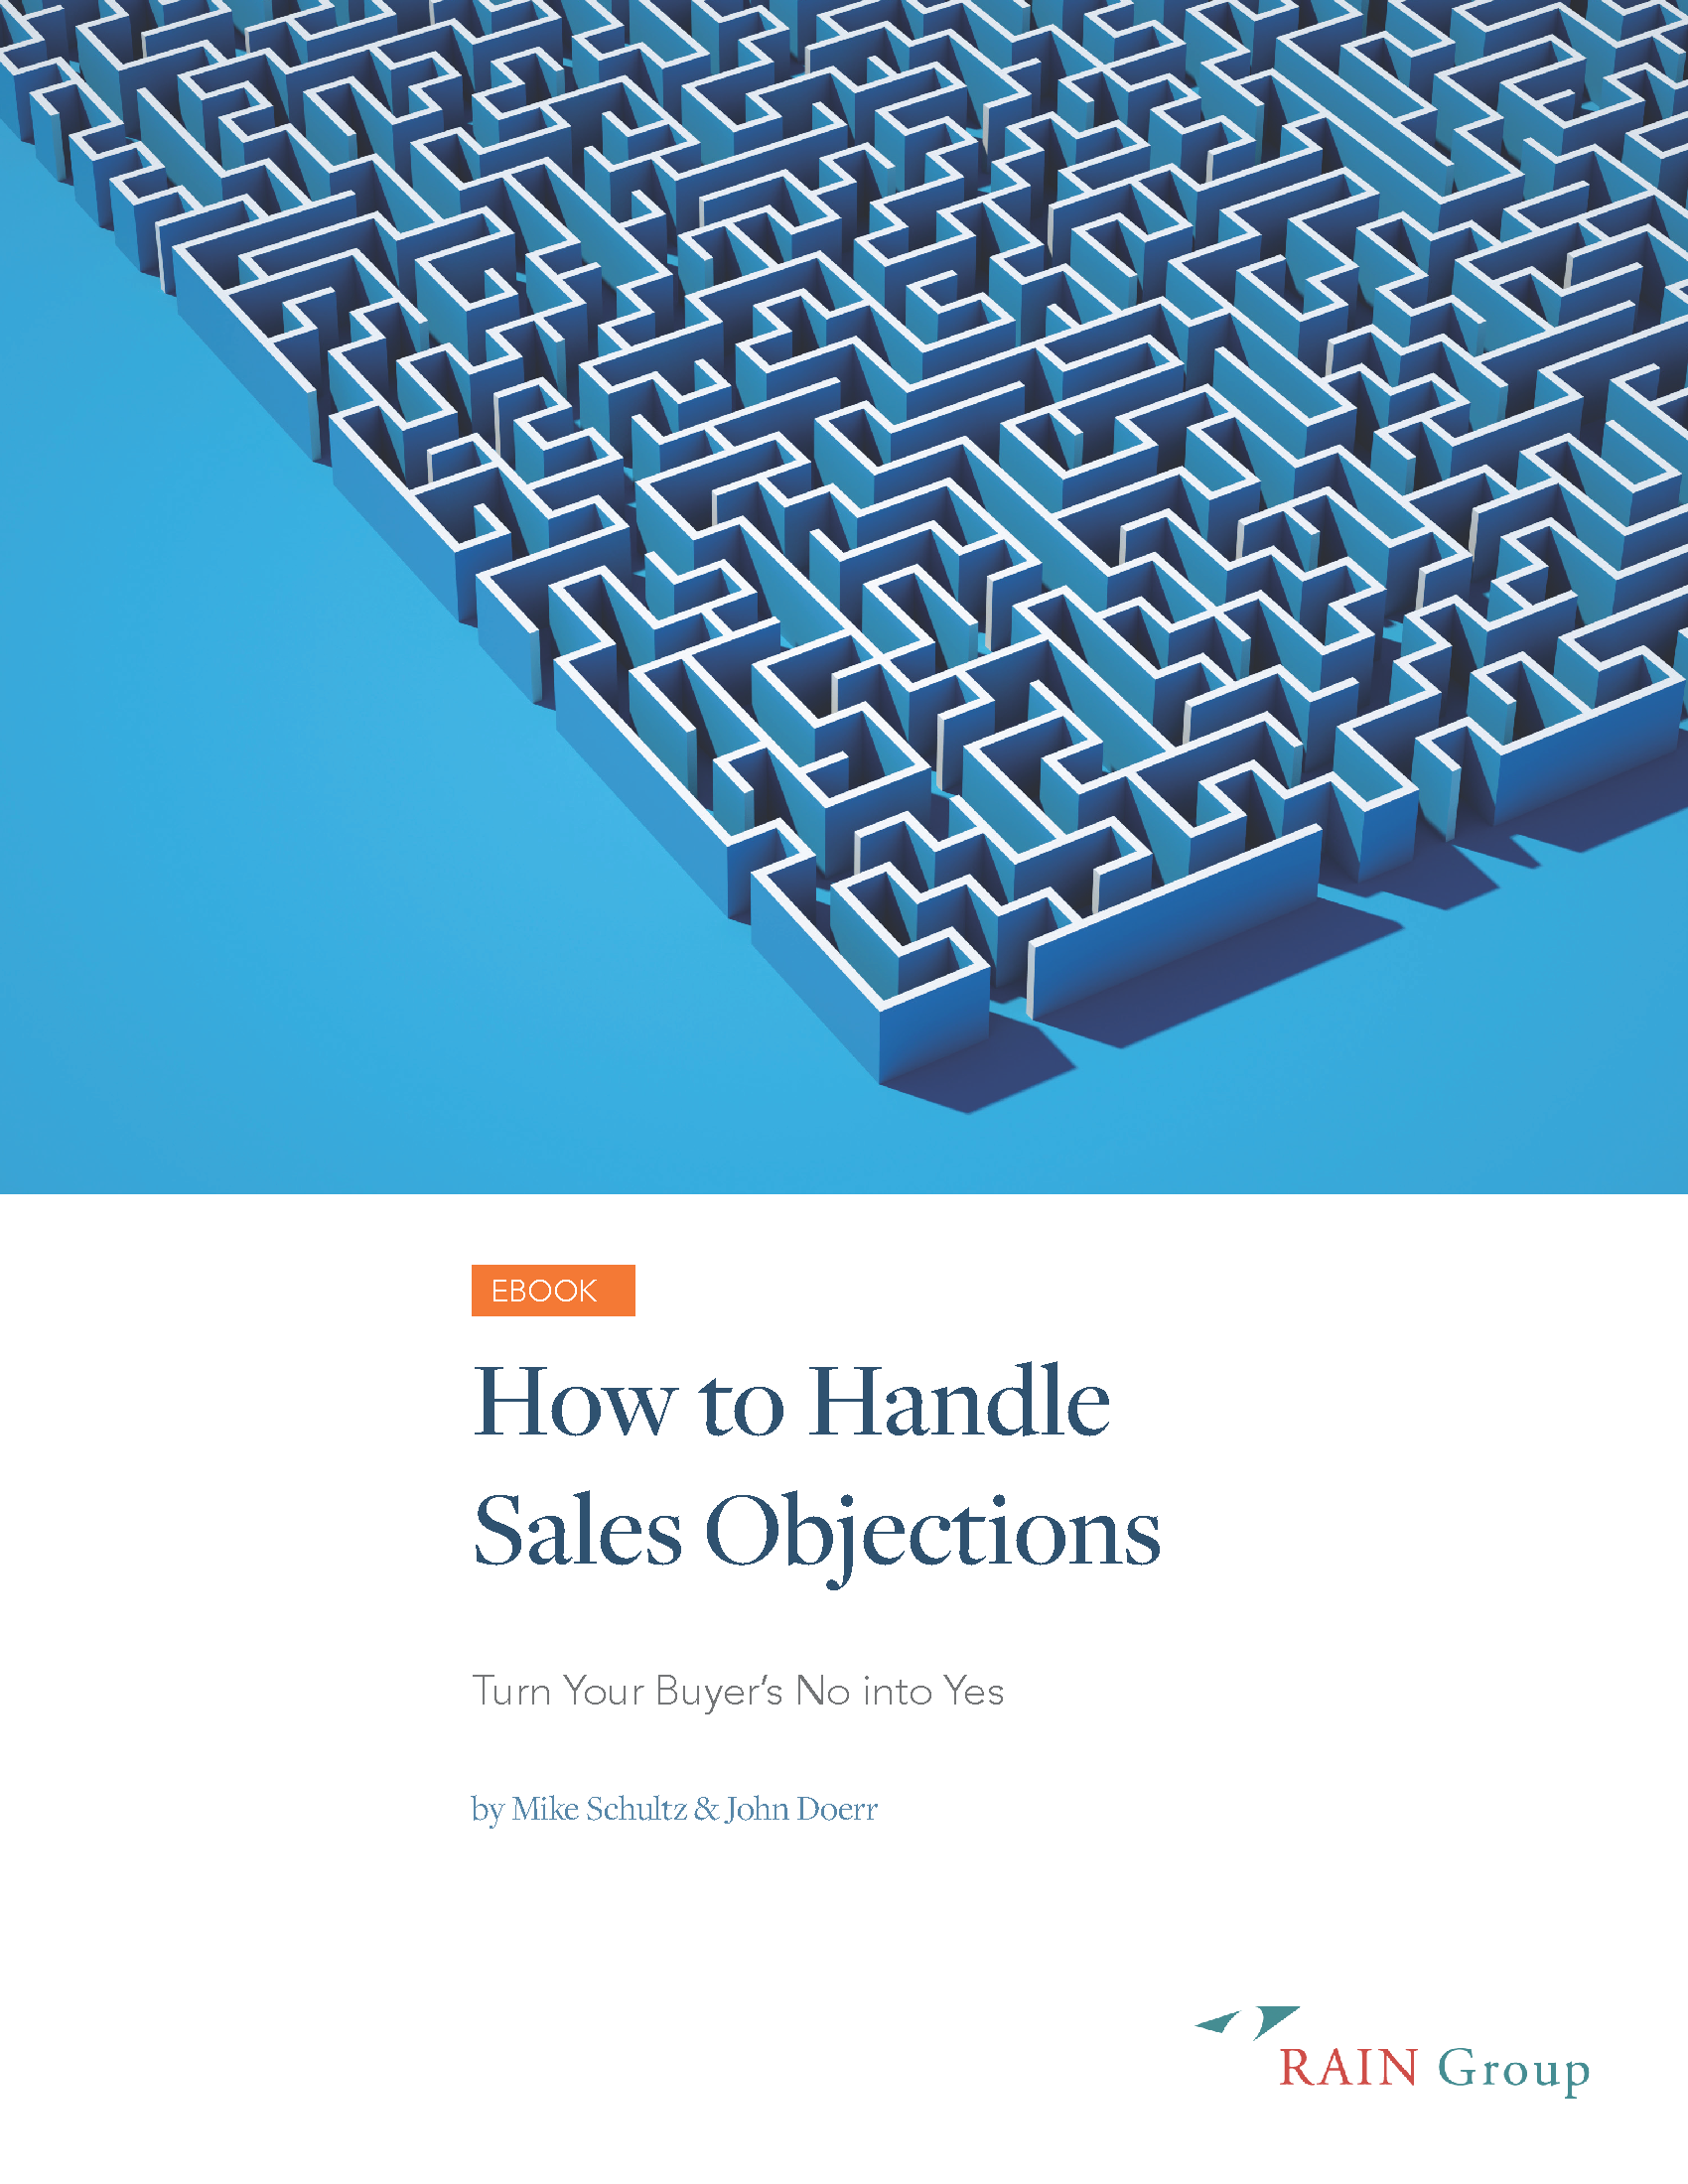 How_to_Handle_Sales_Objections_Page_01.png